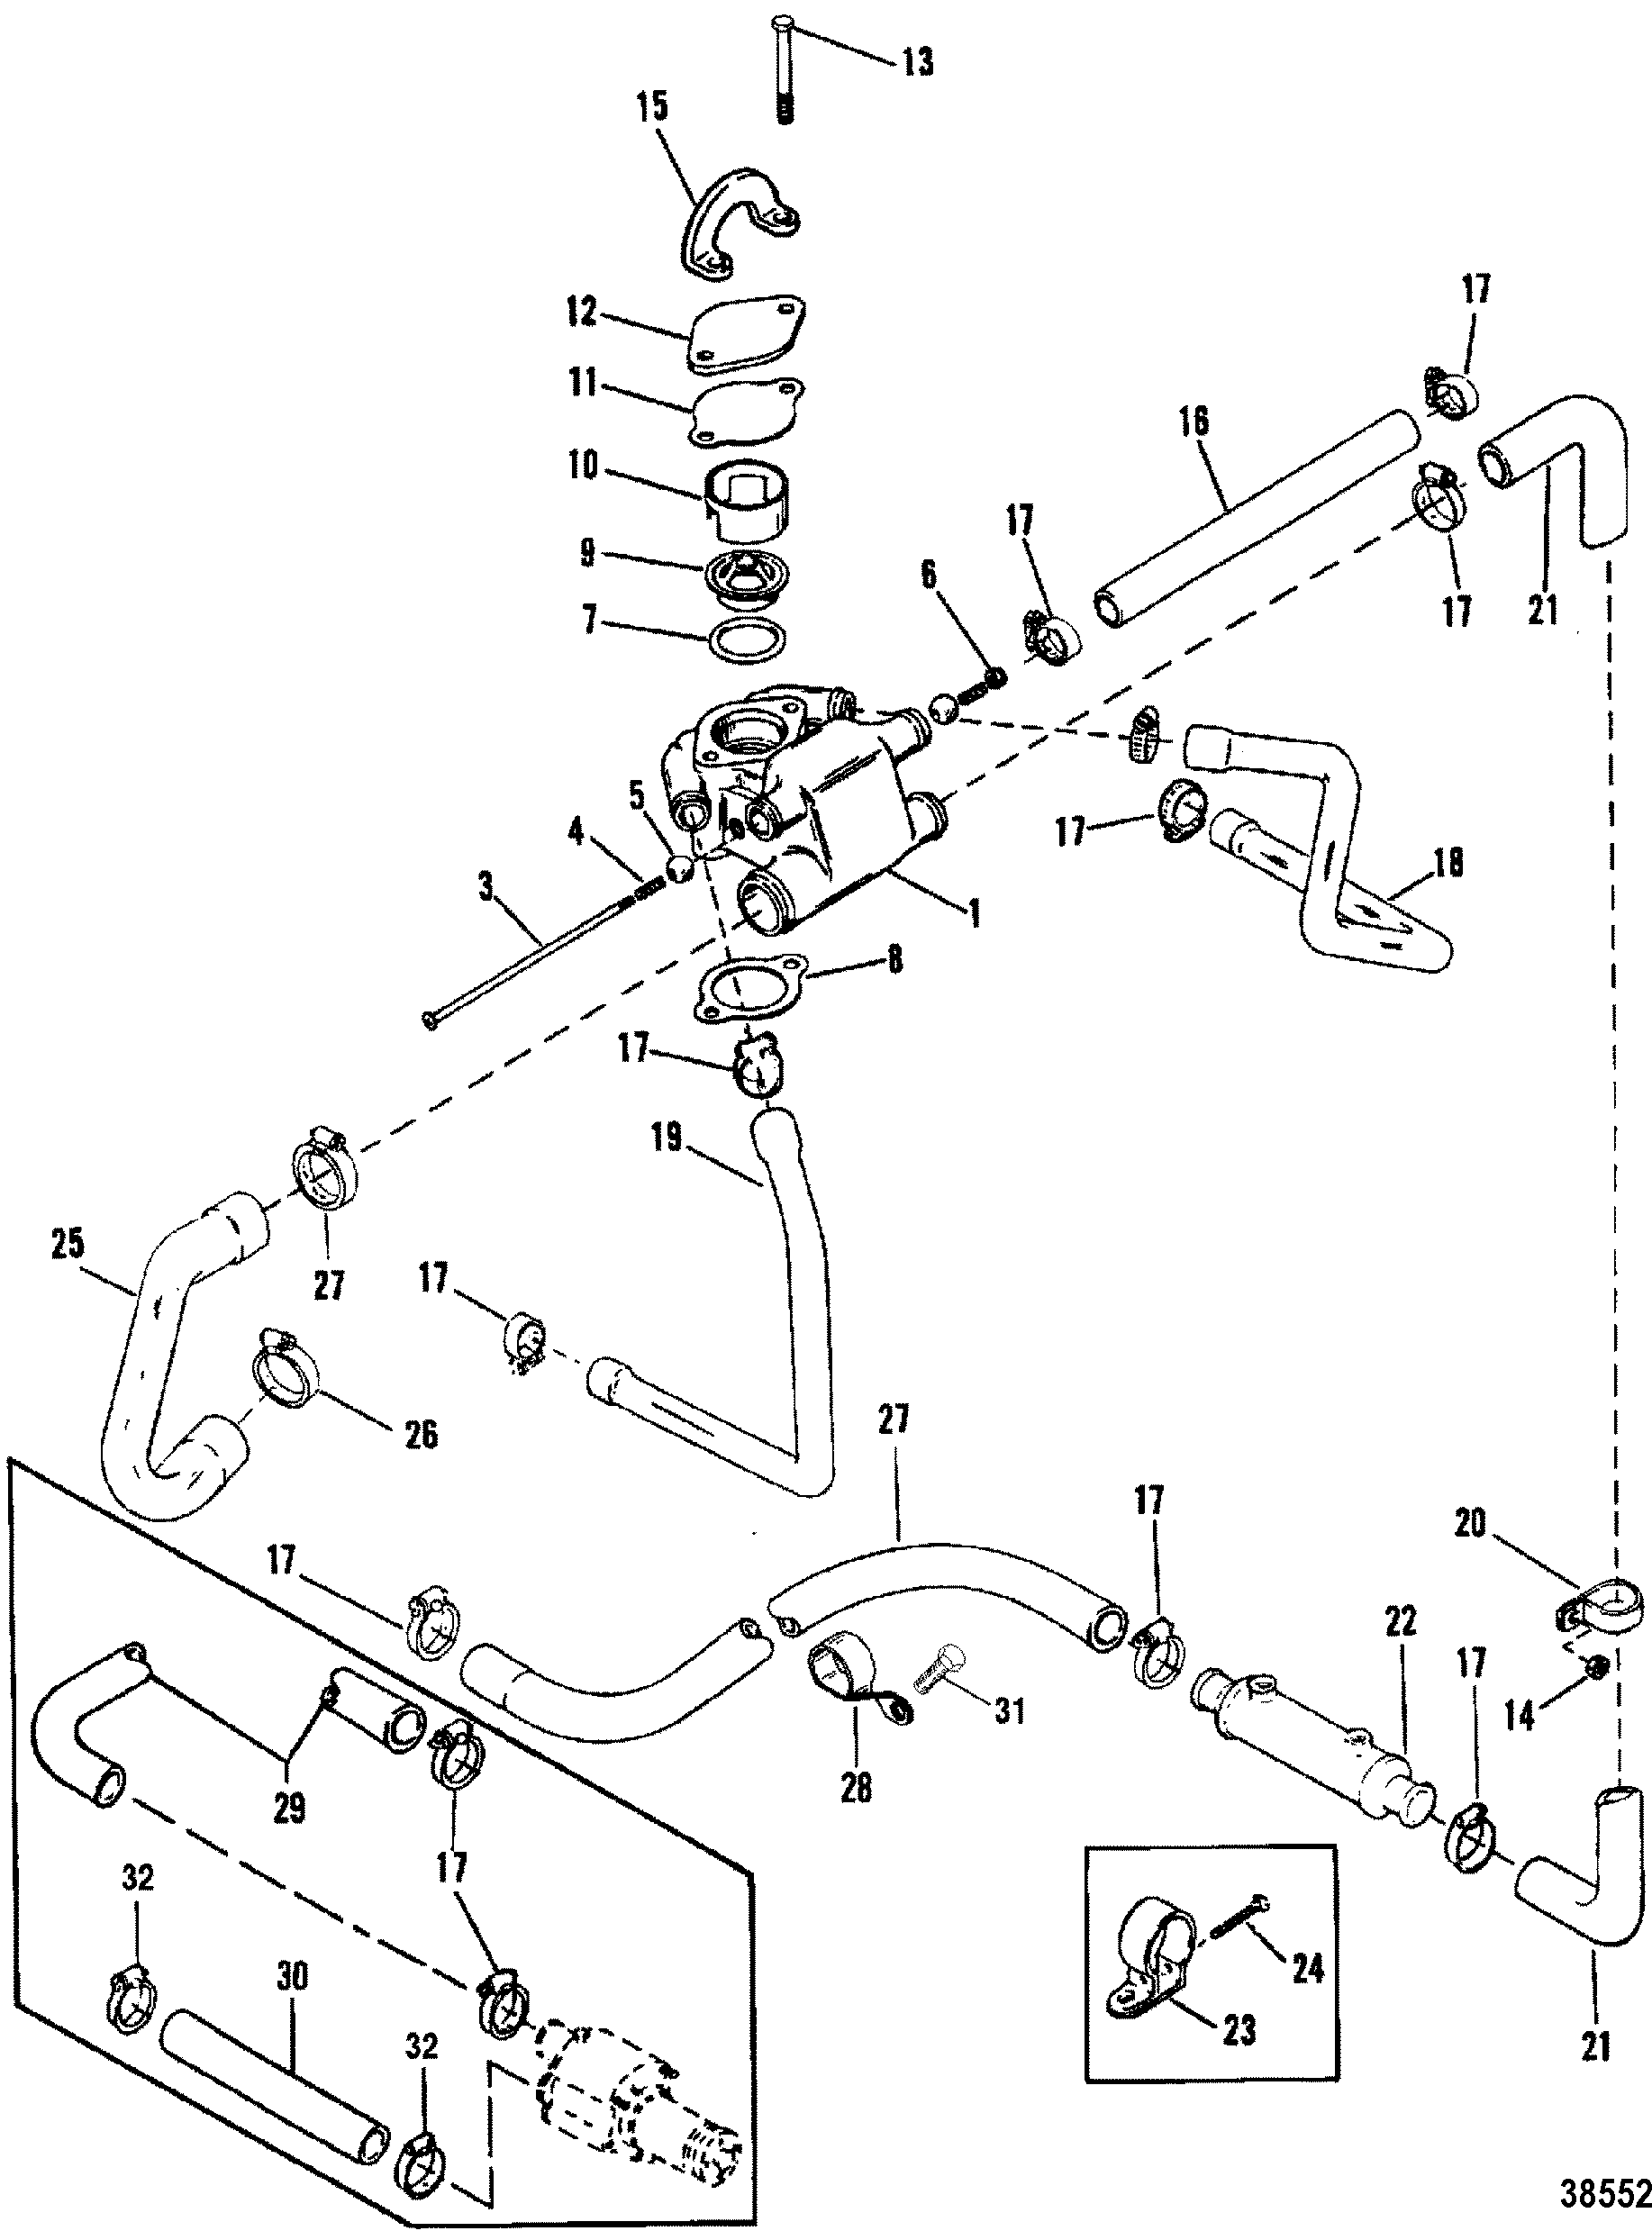 STANDARD COOLING SYSTEM DESIGN II FOR MERCRUISER 200/5.0L